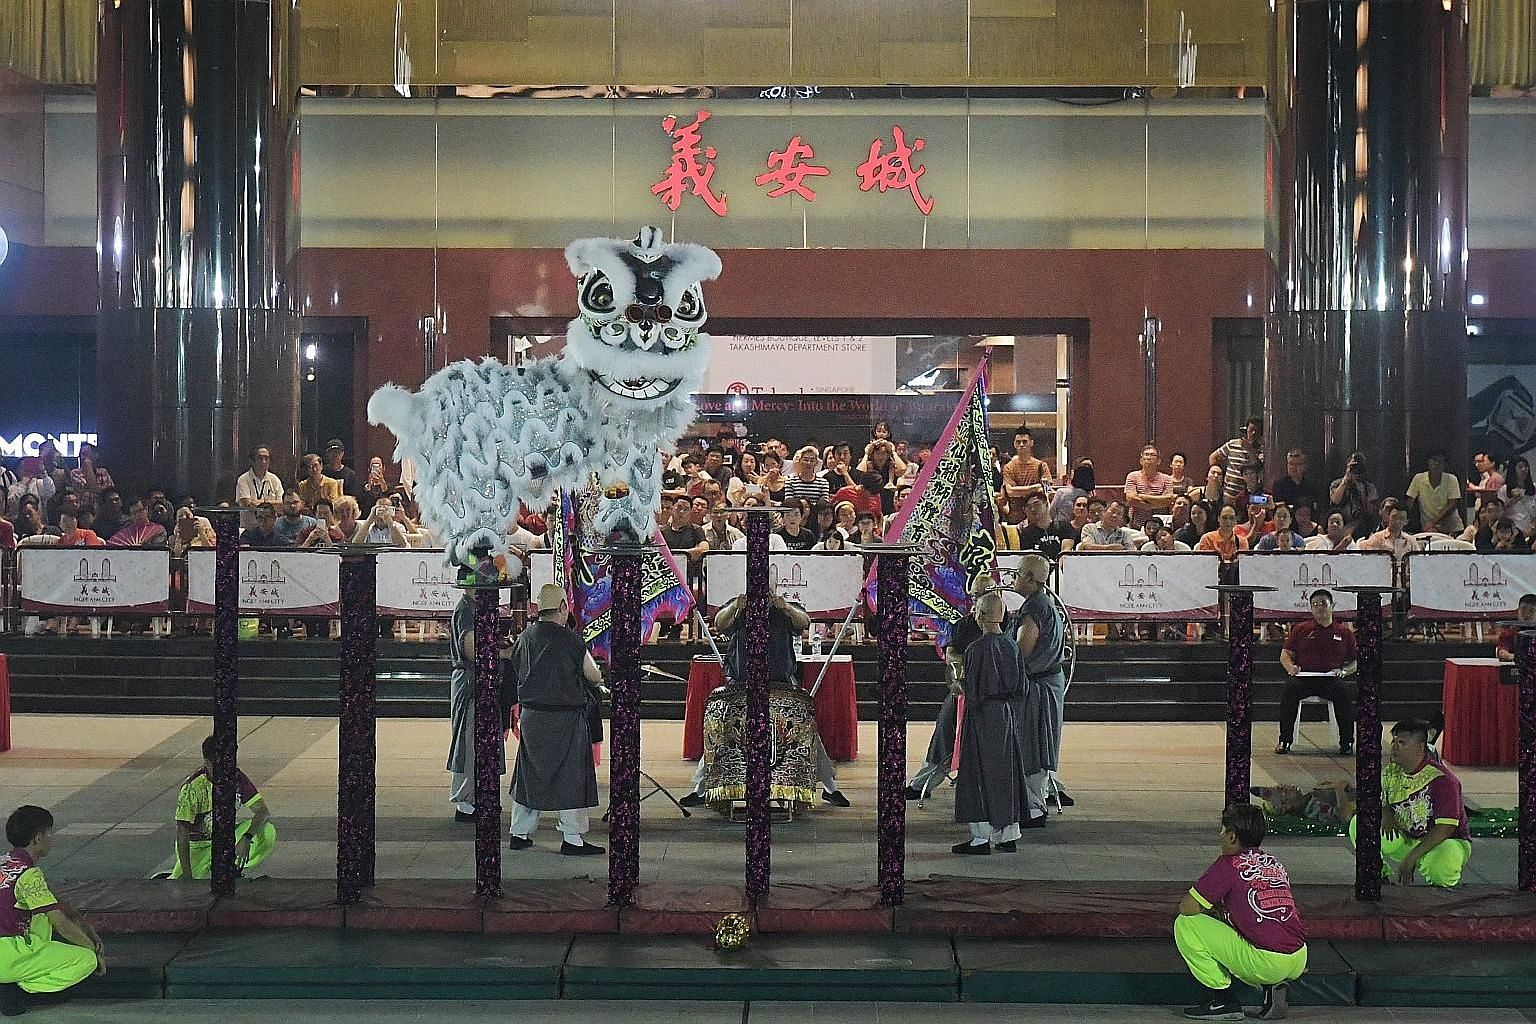 Visitors to Orchard Road can expect to have a roaring good time over the next few days. Some of Singapore's best lion dance teams will be battling it out this week at the 25th Ngee Ann City National Lion Dance Championships 2019, at Ngee Ann City Civ